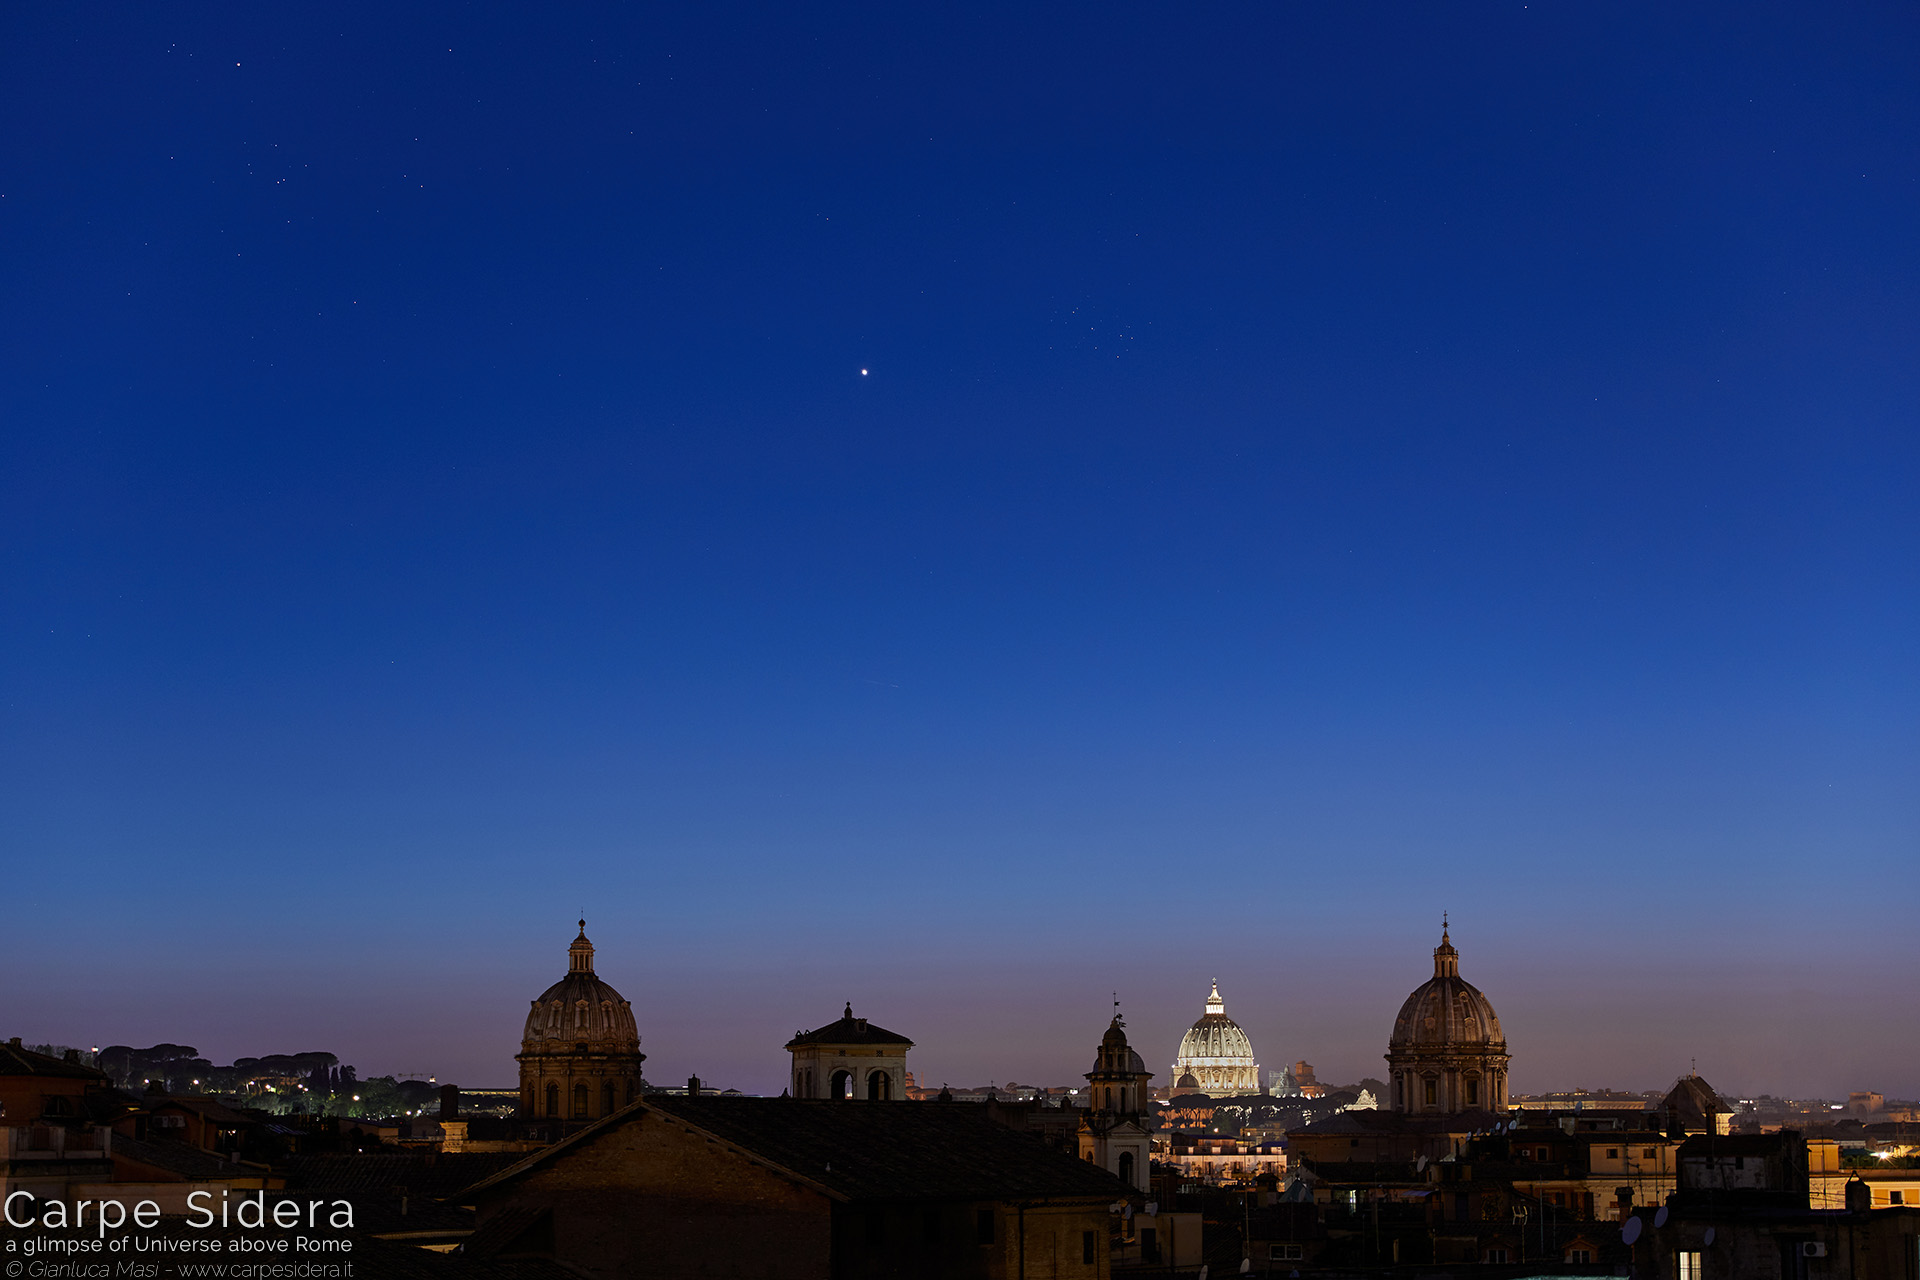 17. Planet Venus and the Pleiades have a conjunction above some domes of the Eternal City.